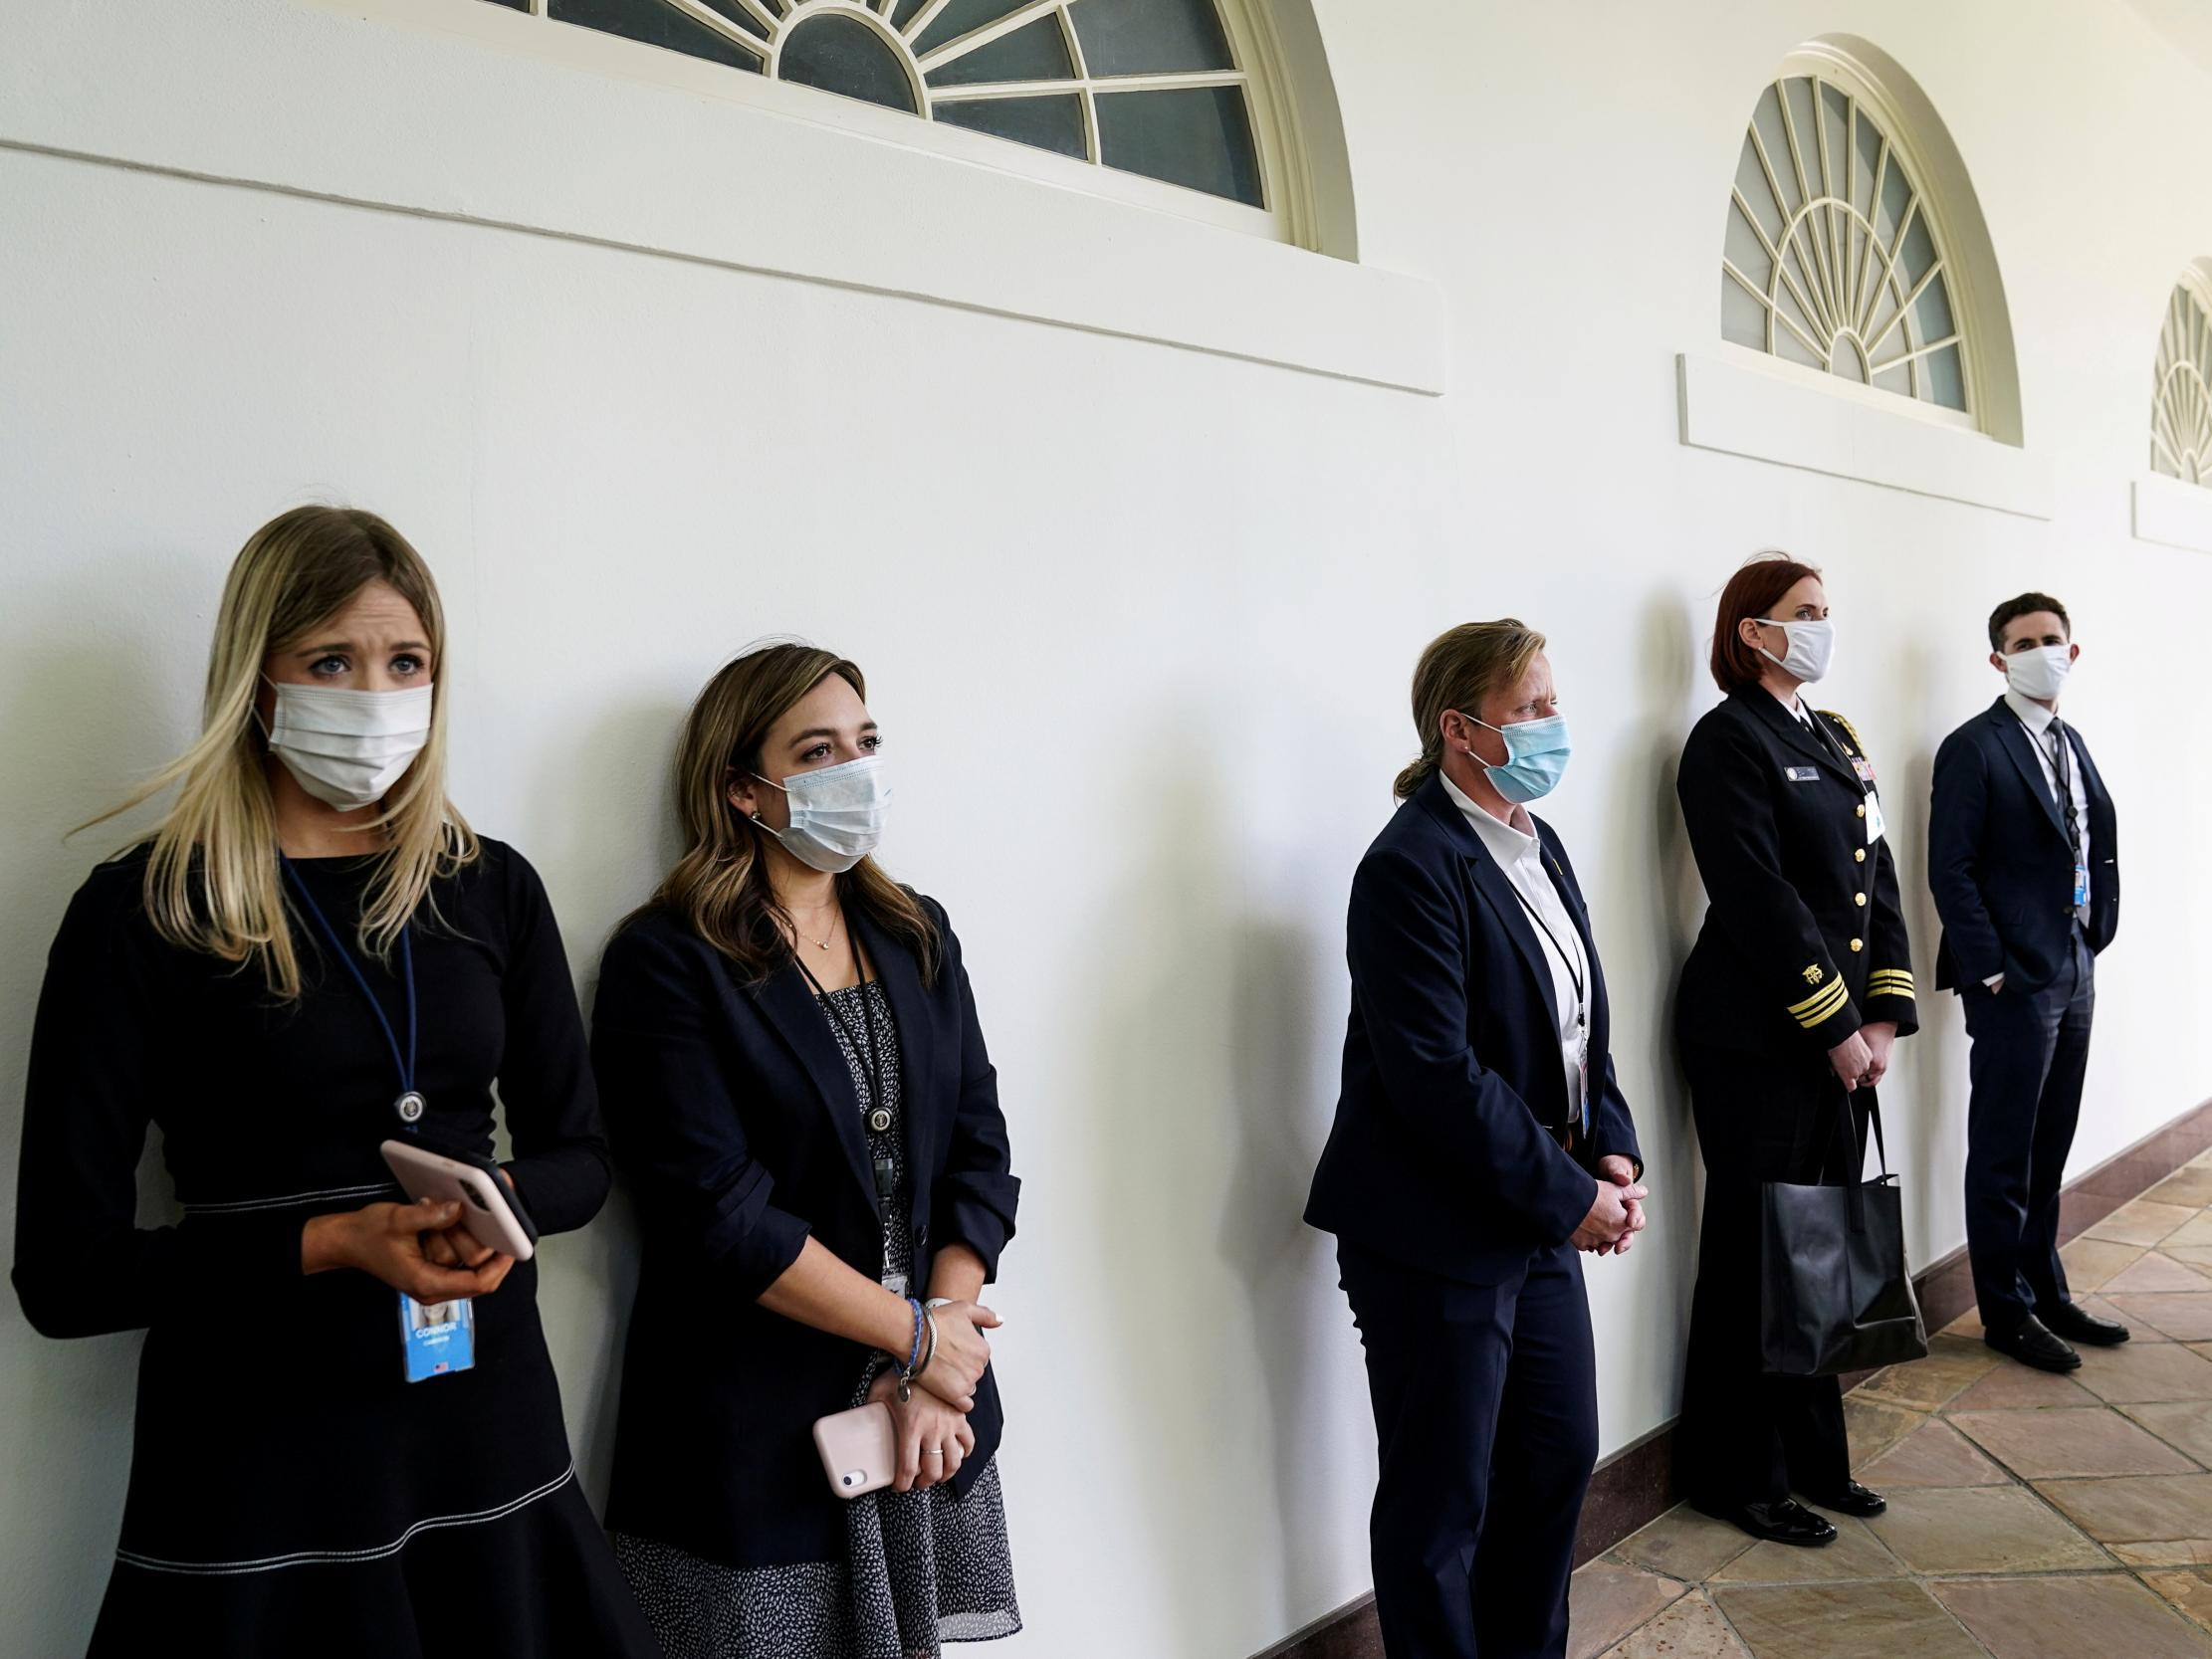 Trump staff and visitors ordered to wear masks in West Wing following coronavirus scares thumbnail